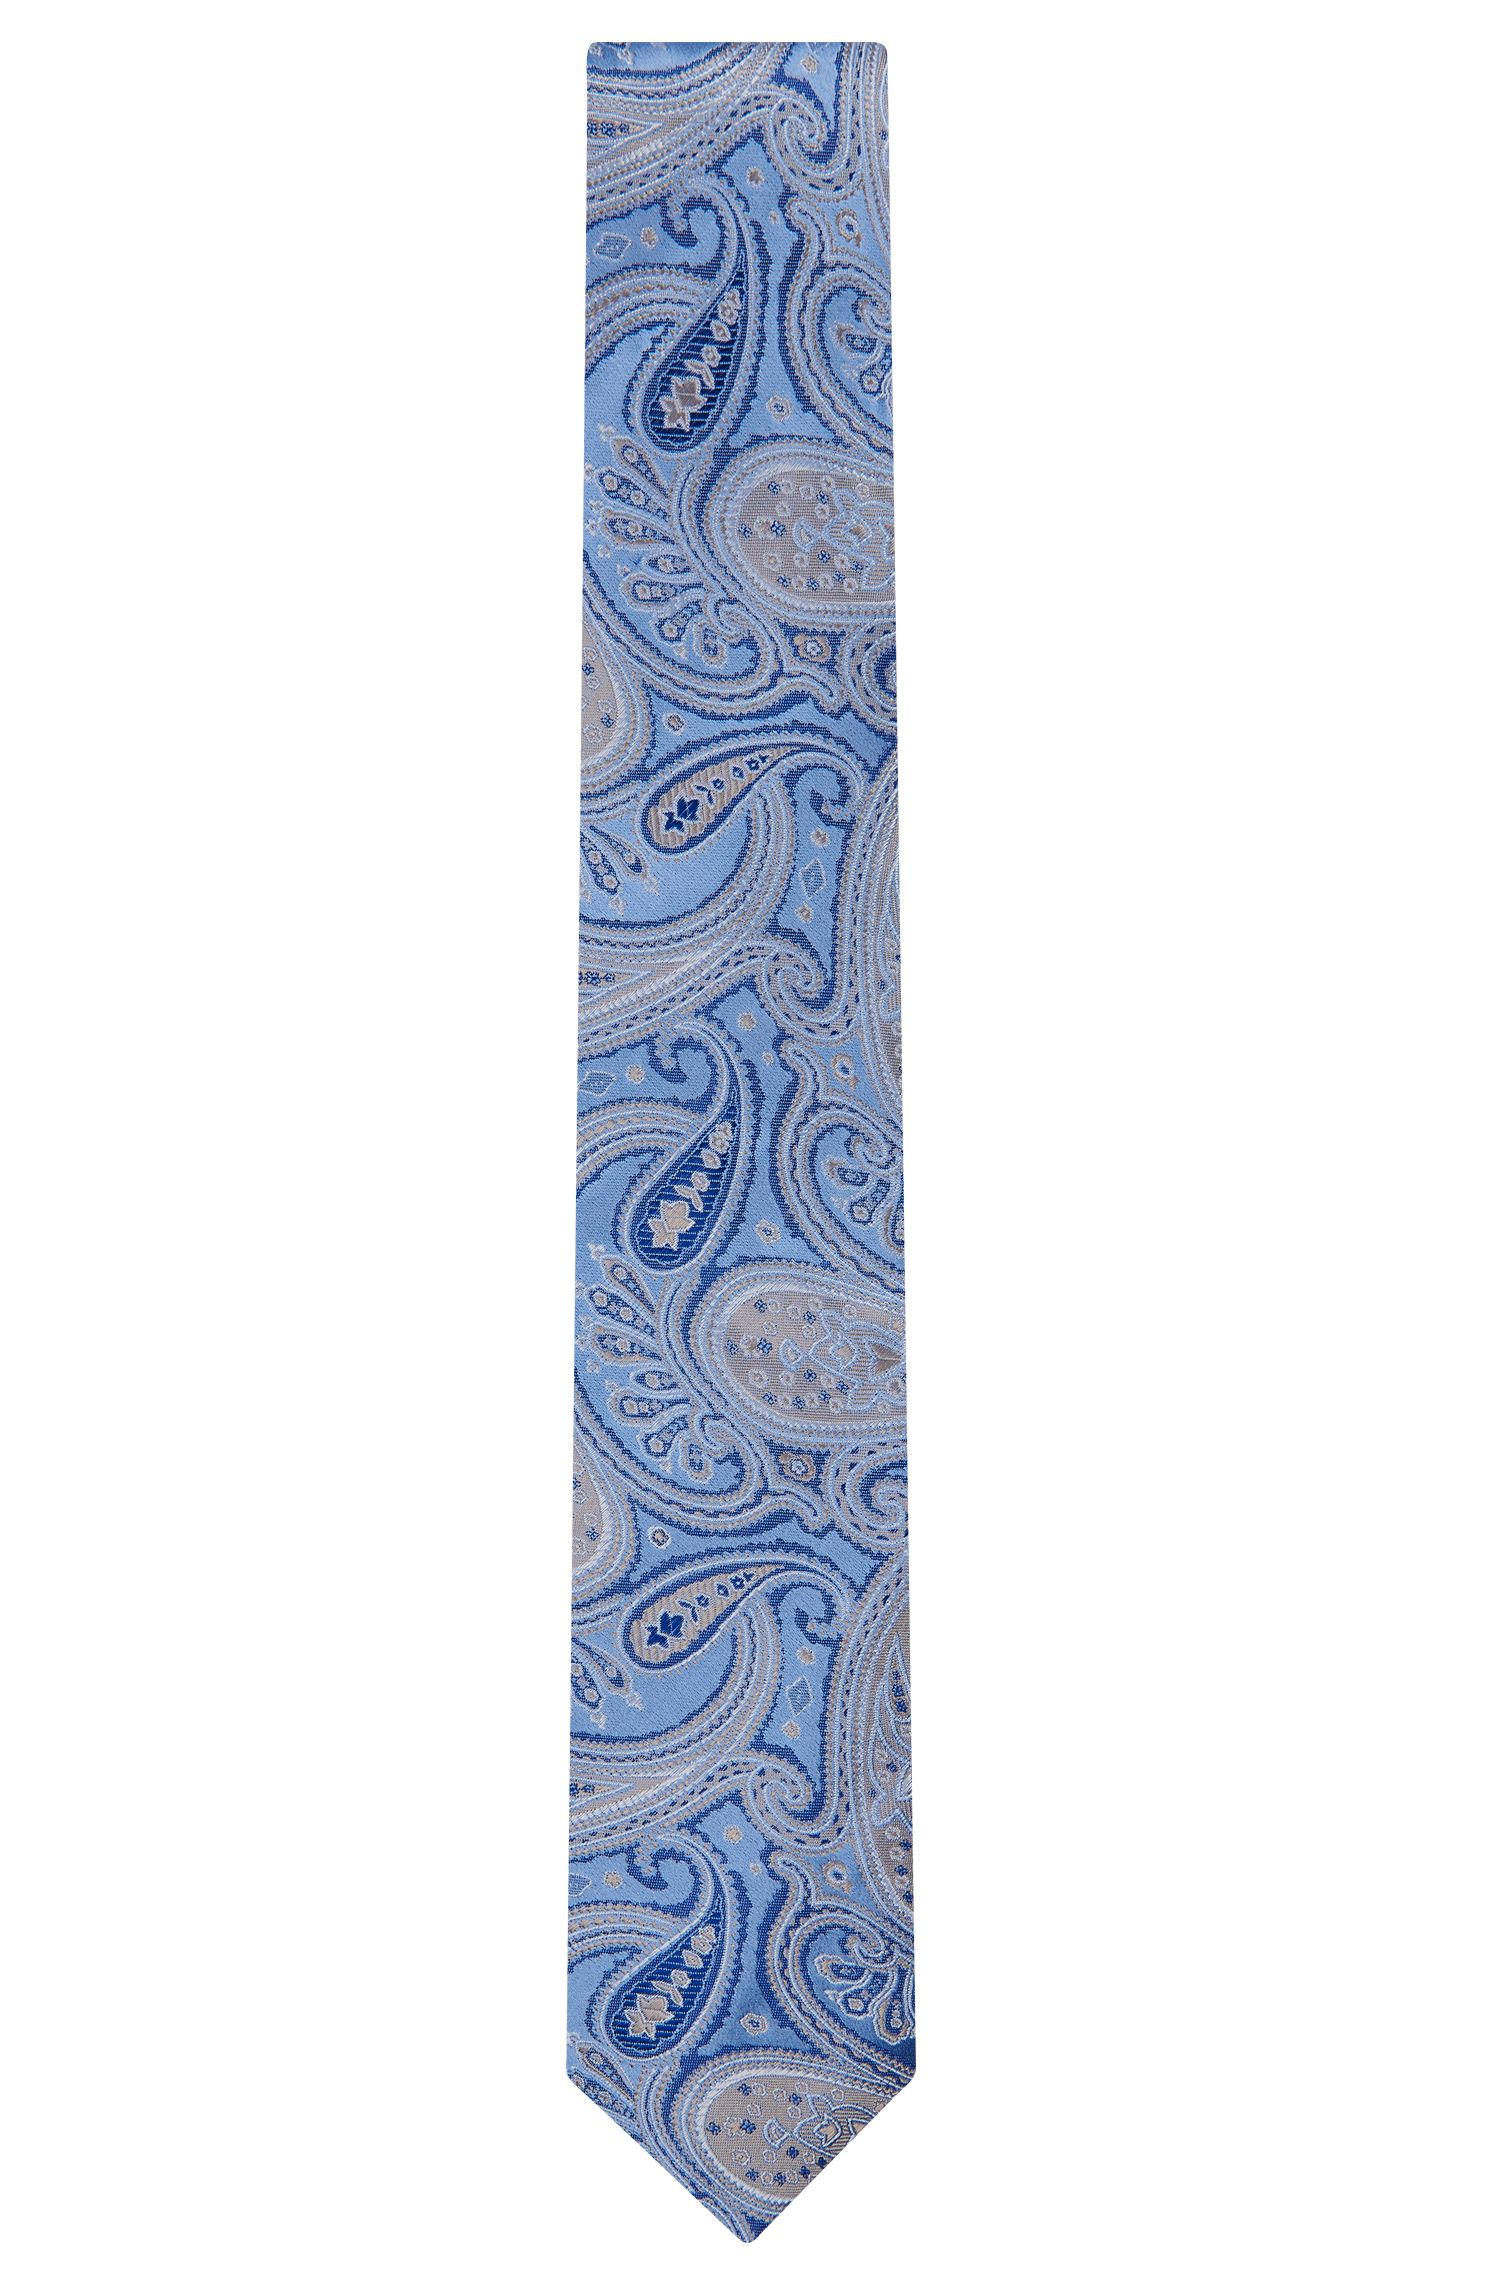 Embroidered Italian Silk Tie